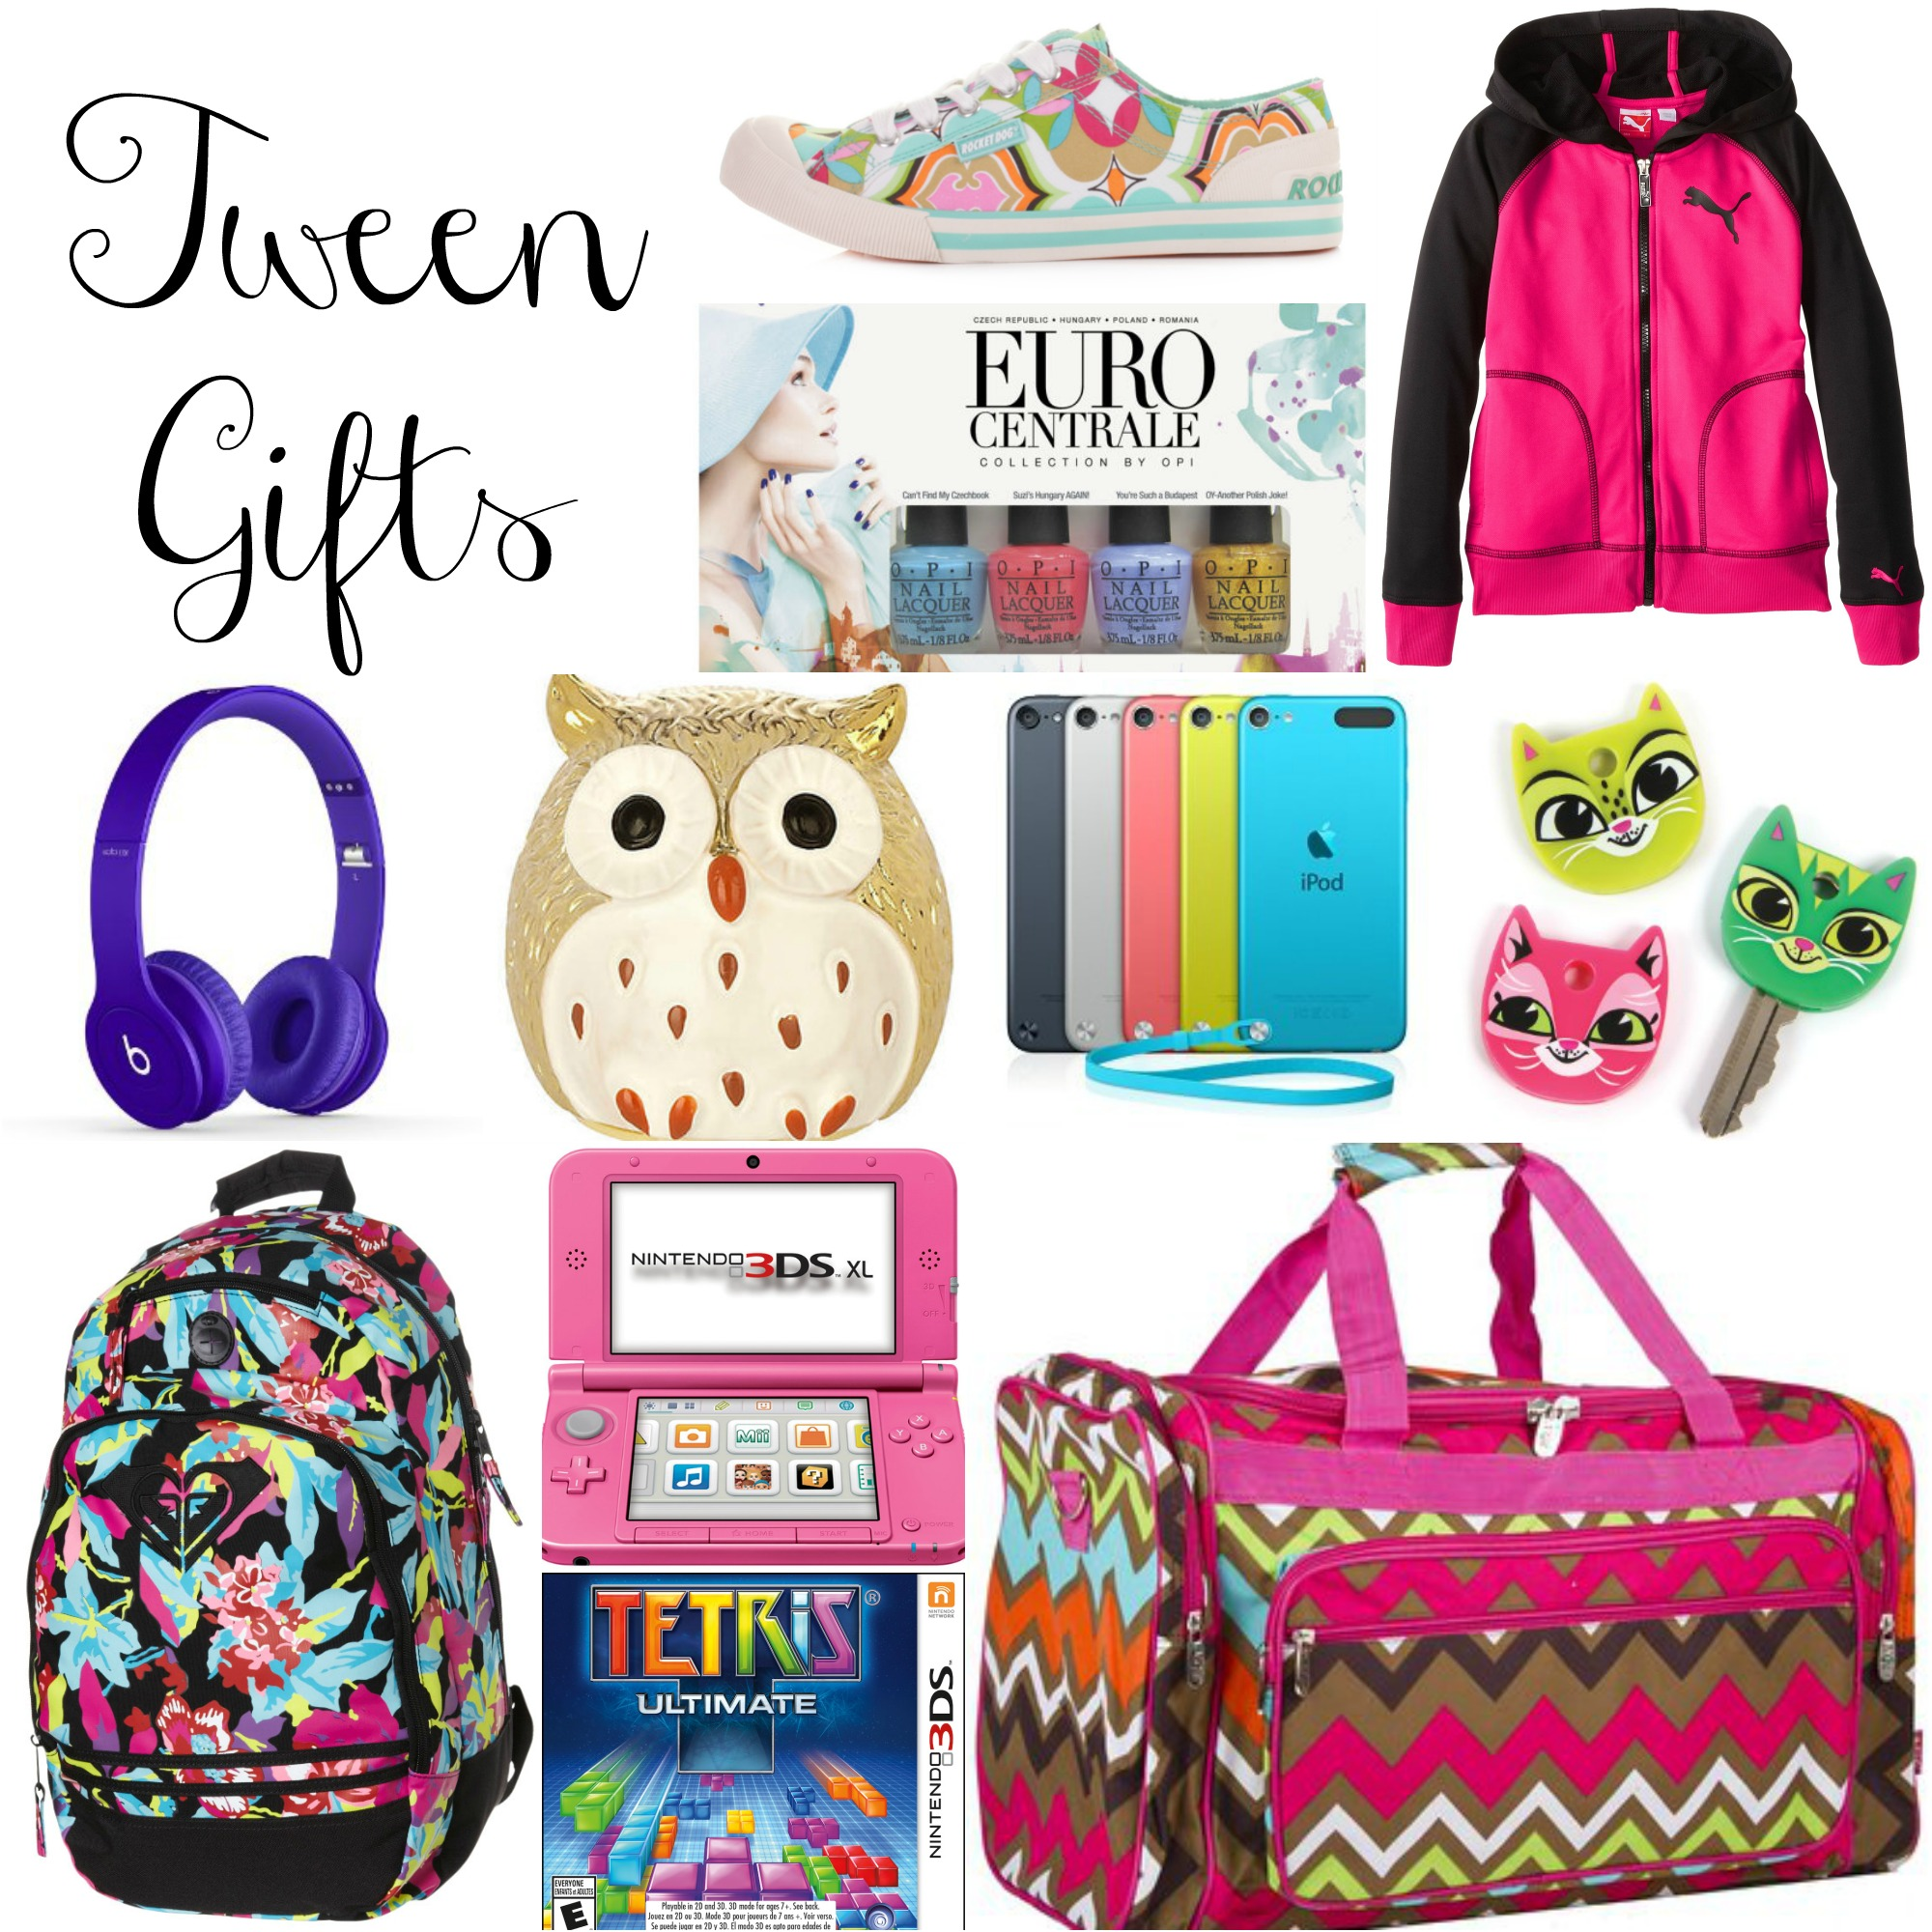 21 Great Gifts for Tweens | Confessions of a ...